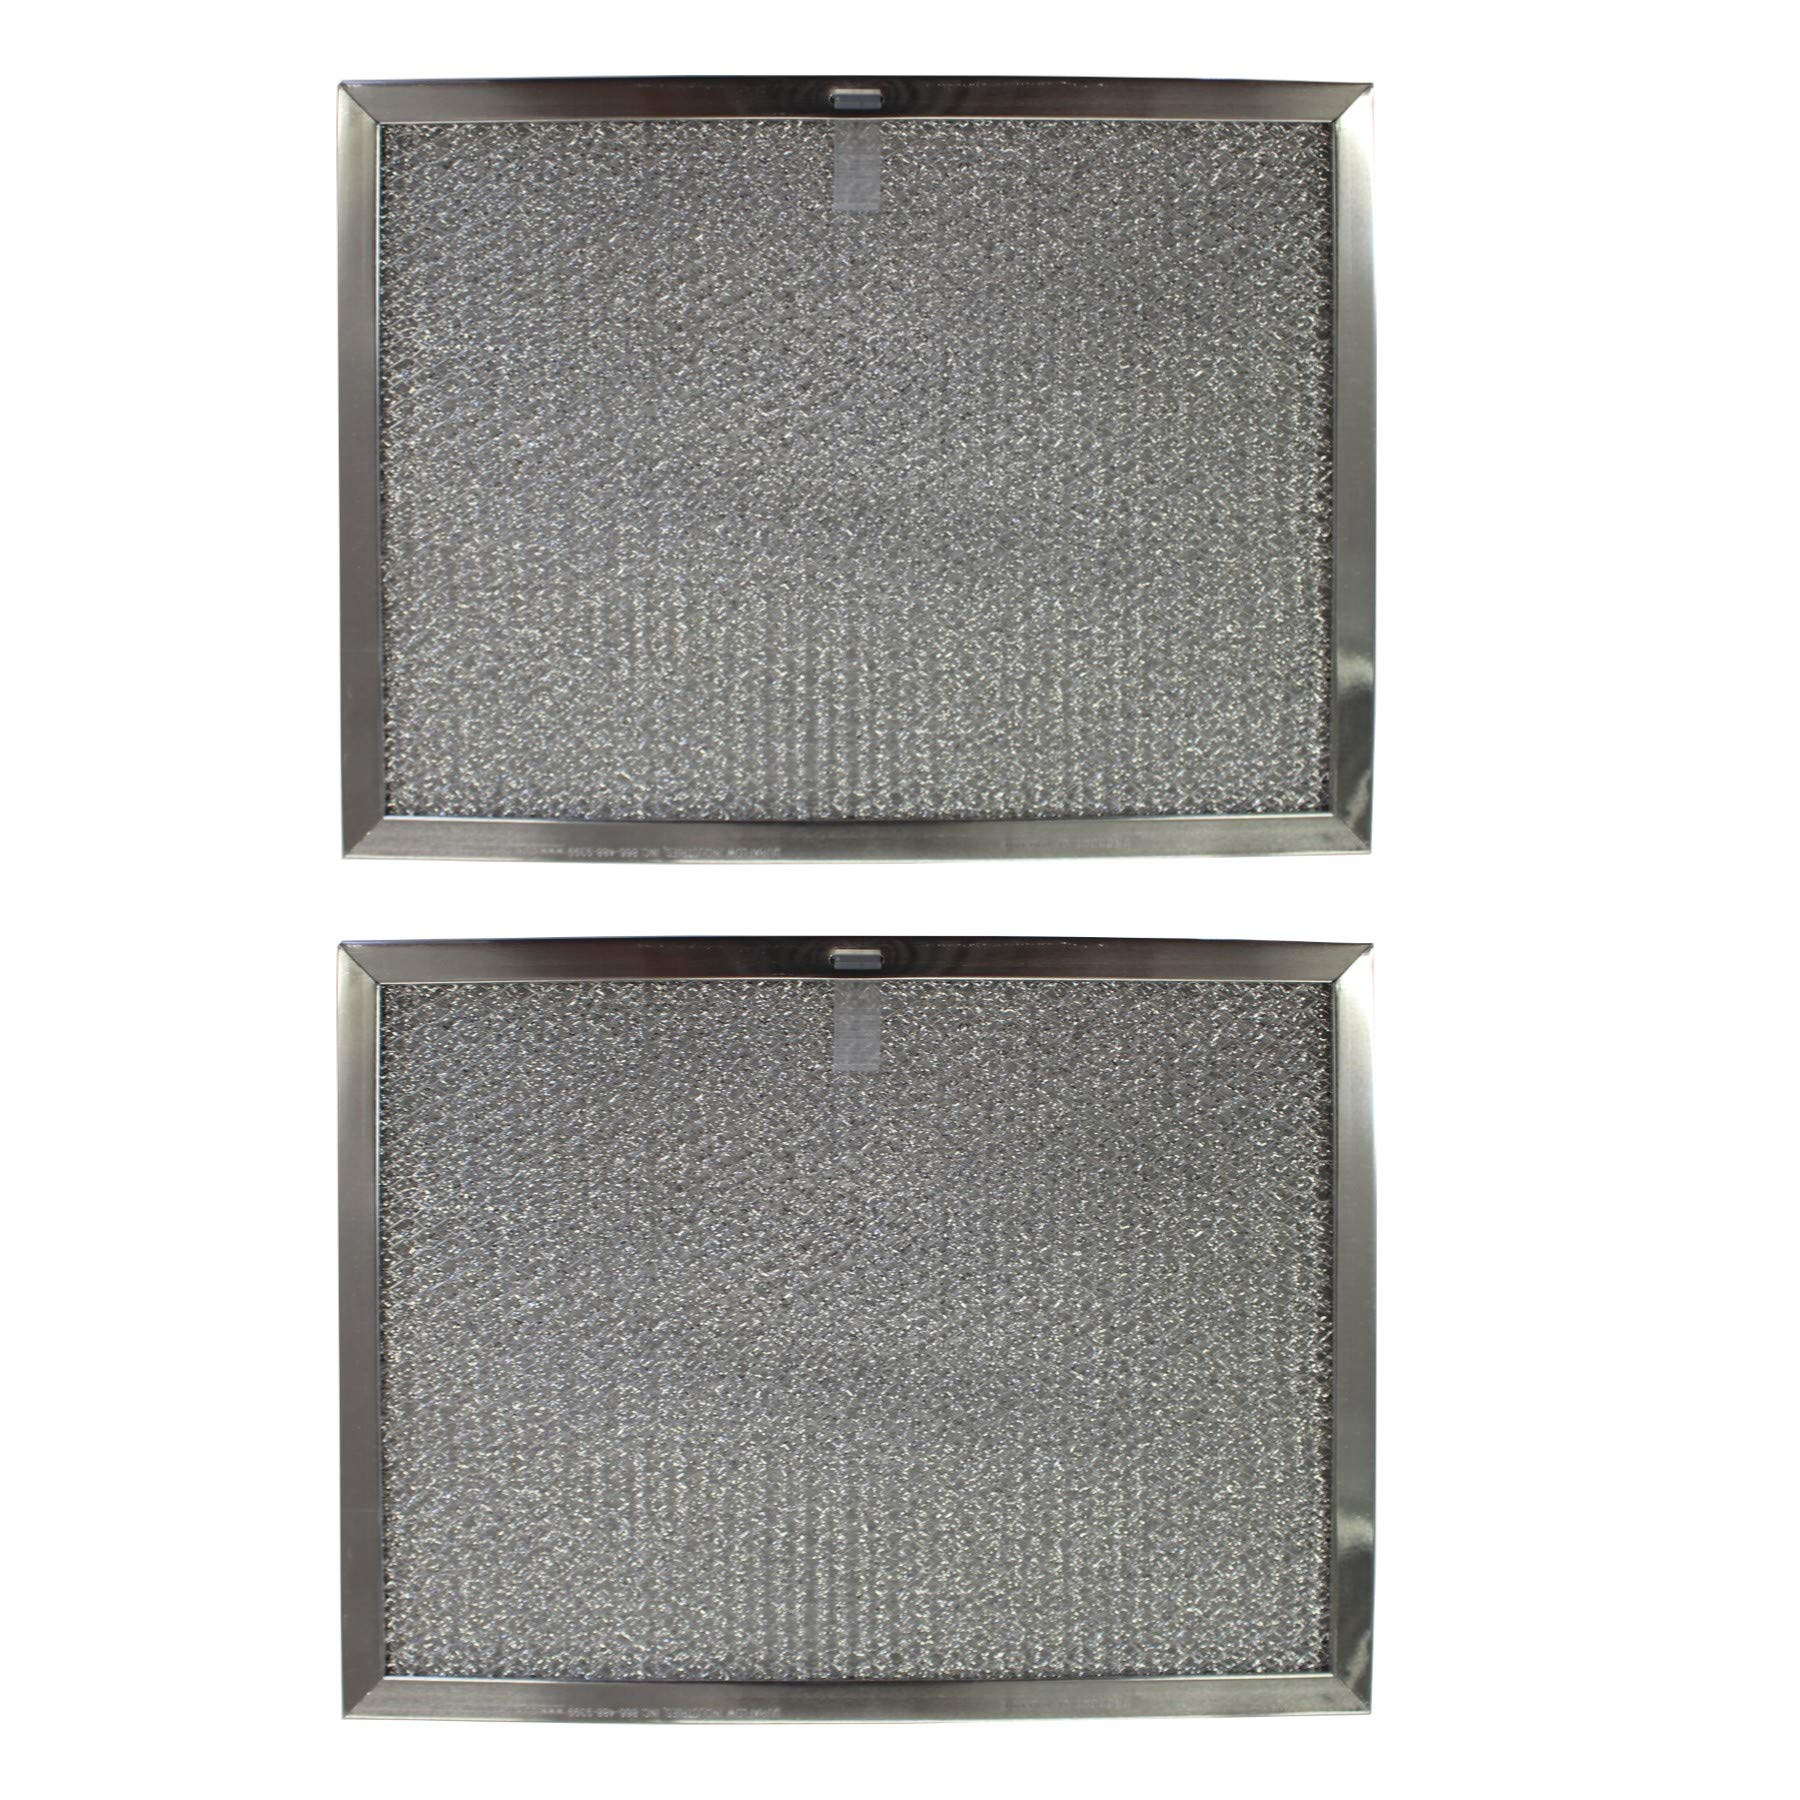 Replacement Aluminum Filters Compatible with Broan 99010305, 99010305D, BPS1FA36, S99010303, S990103